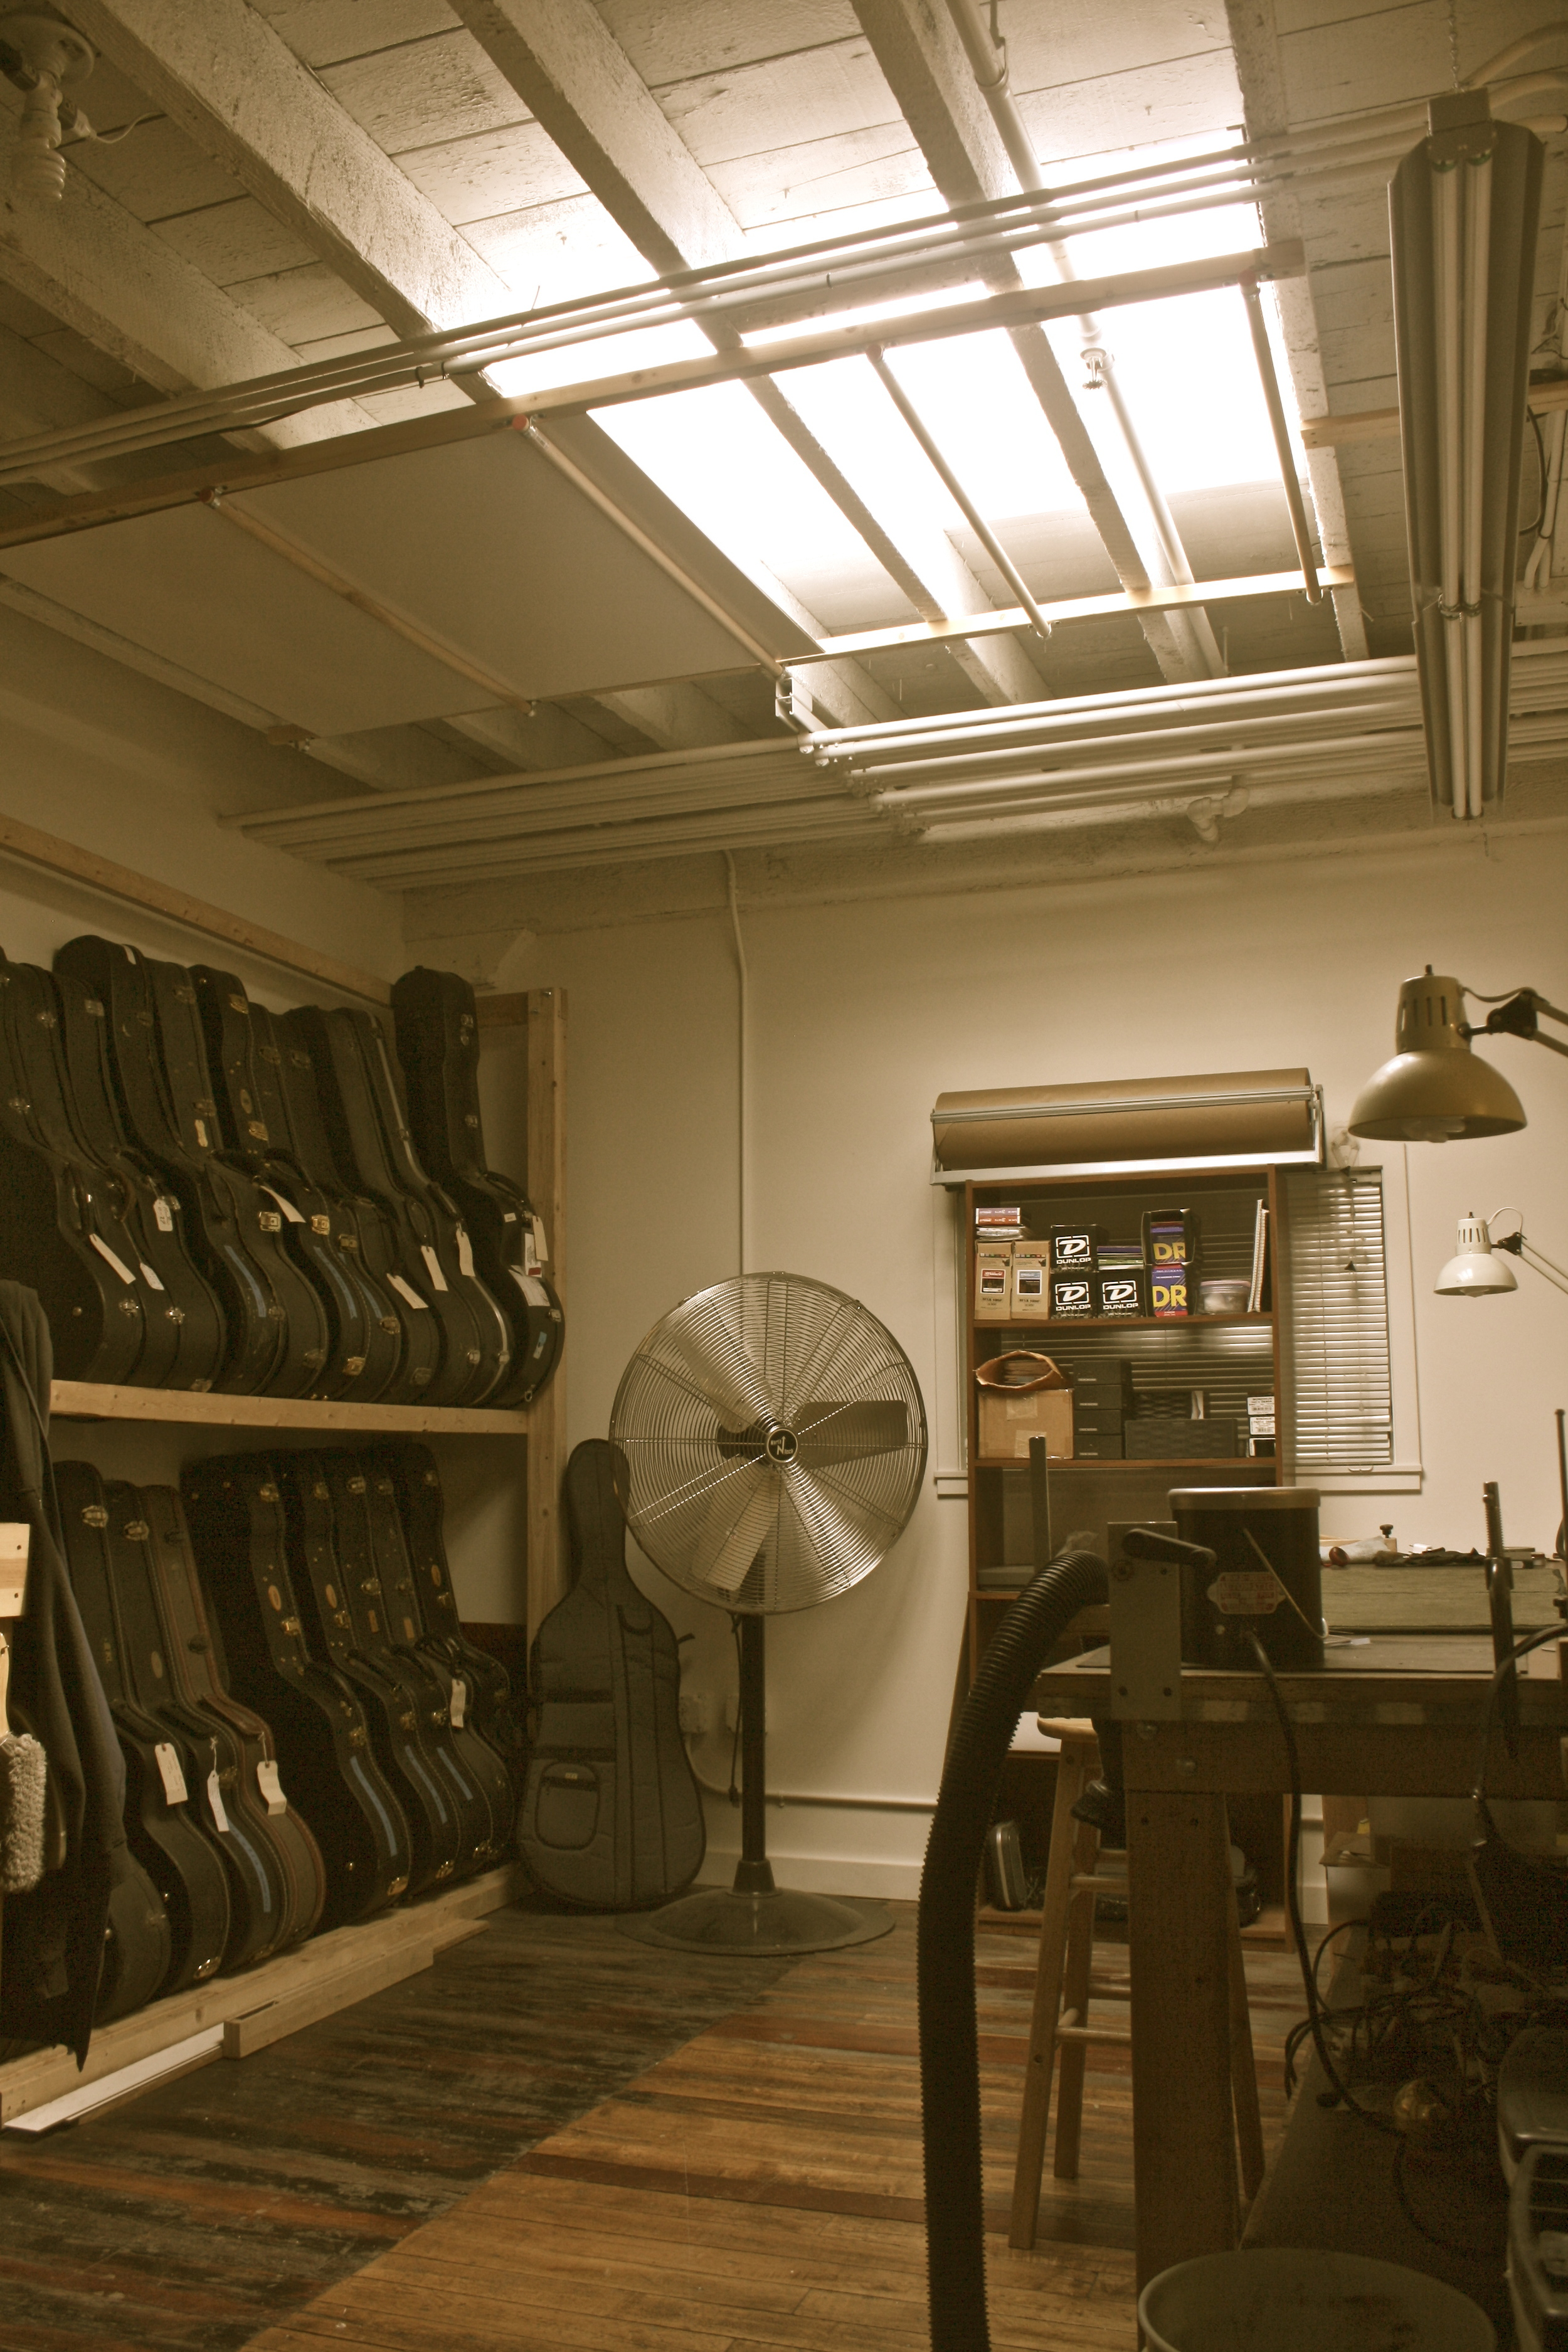 The shop is three floors with the top floor being dedicated to finish work, the final assembly of the guitars and vintage restoration. Having a large skylight with ample natural sunlight is paramount in doing top quality finish and restorative work.